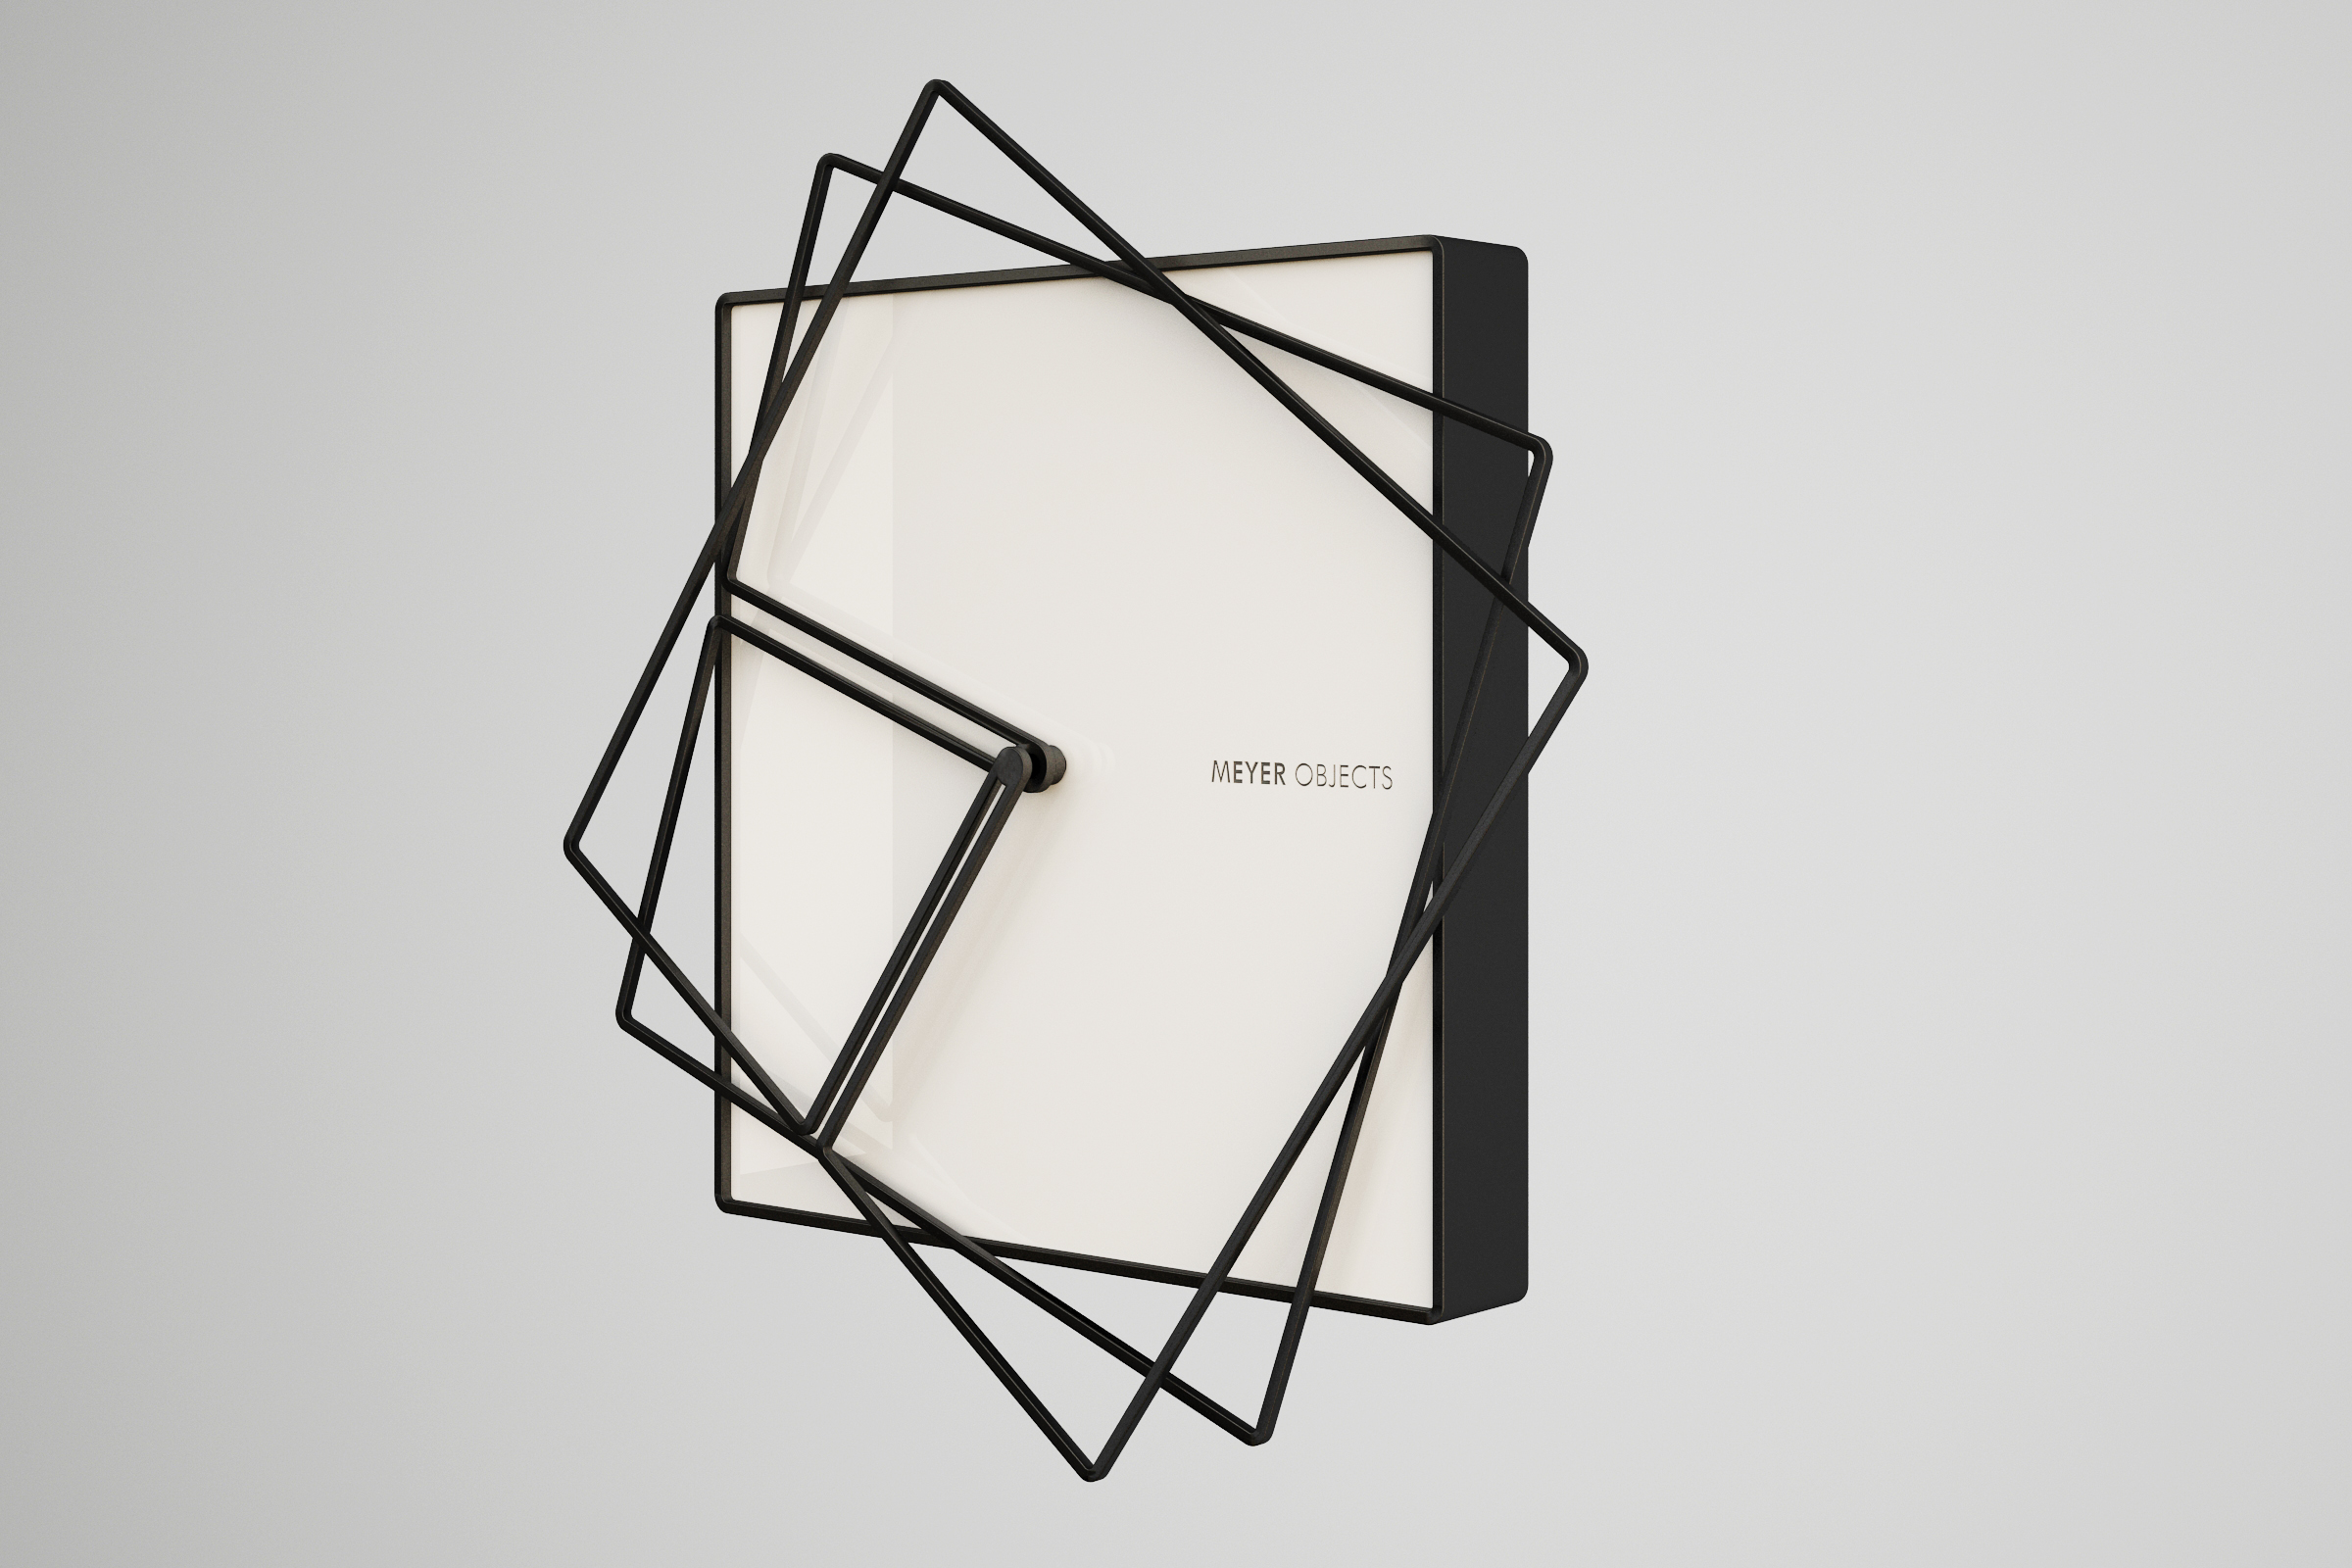 Frame Clokc is unique design object for your wall